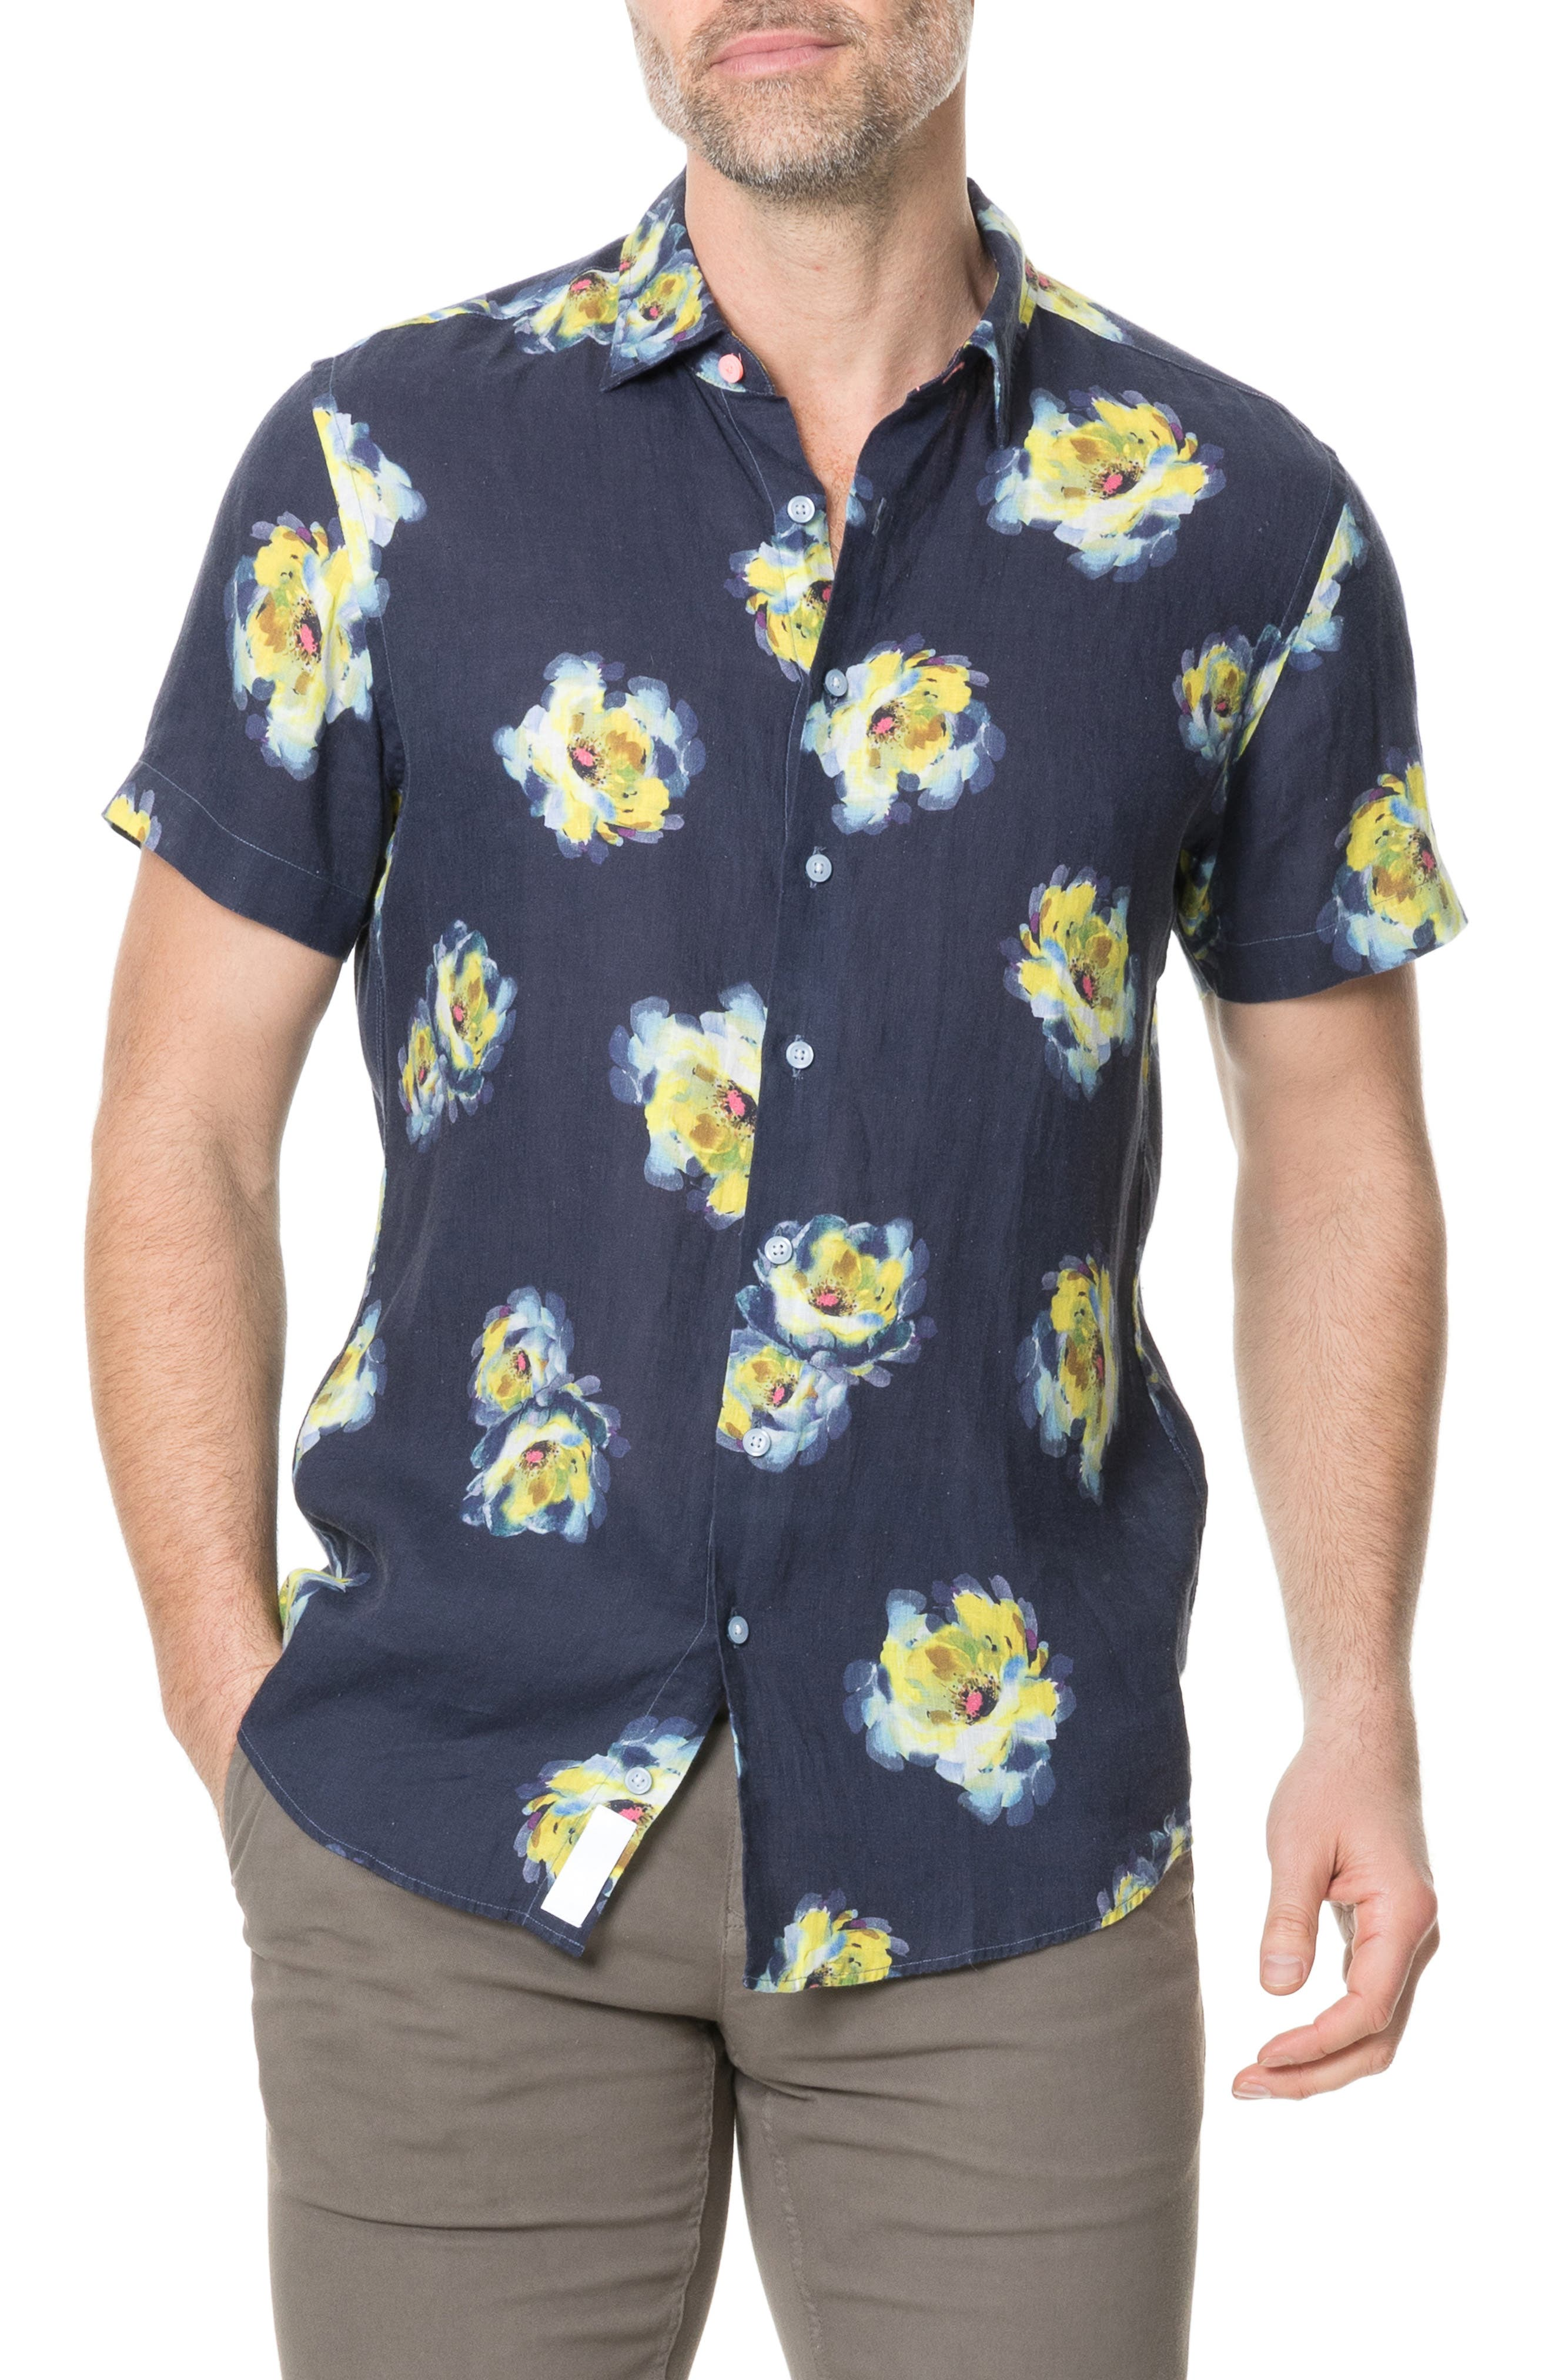 Image of RODD AND GUNN Hopelands Regular Fit Floral Short Sleeve Linen Button-Up Shirt